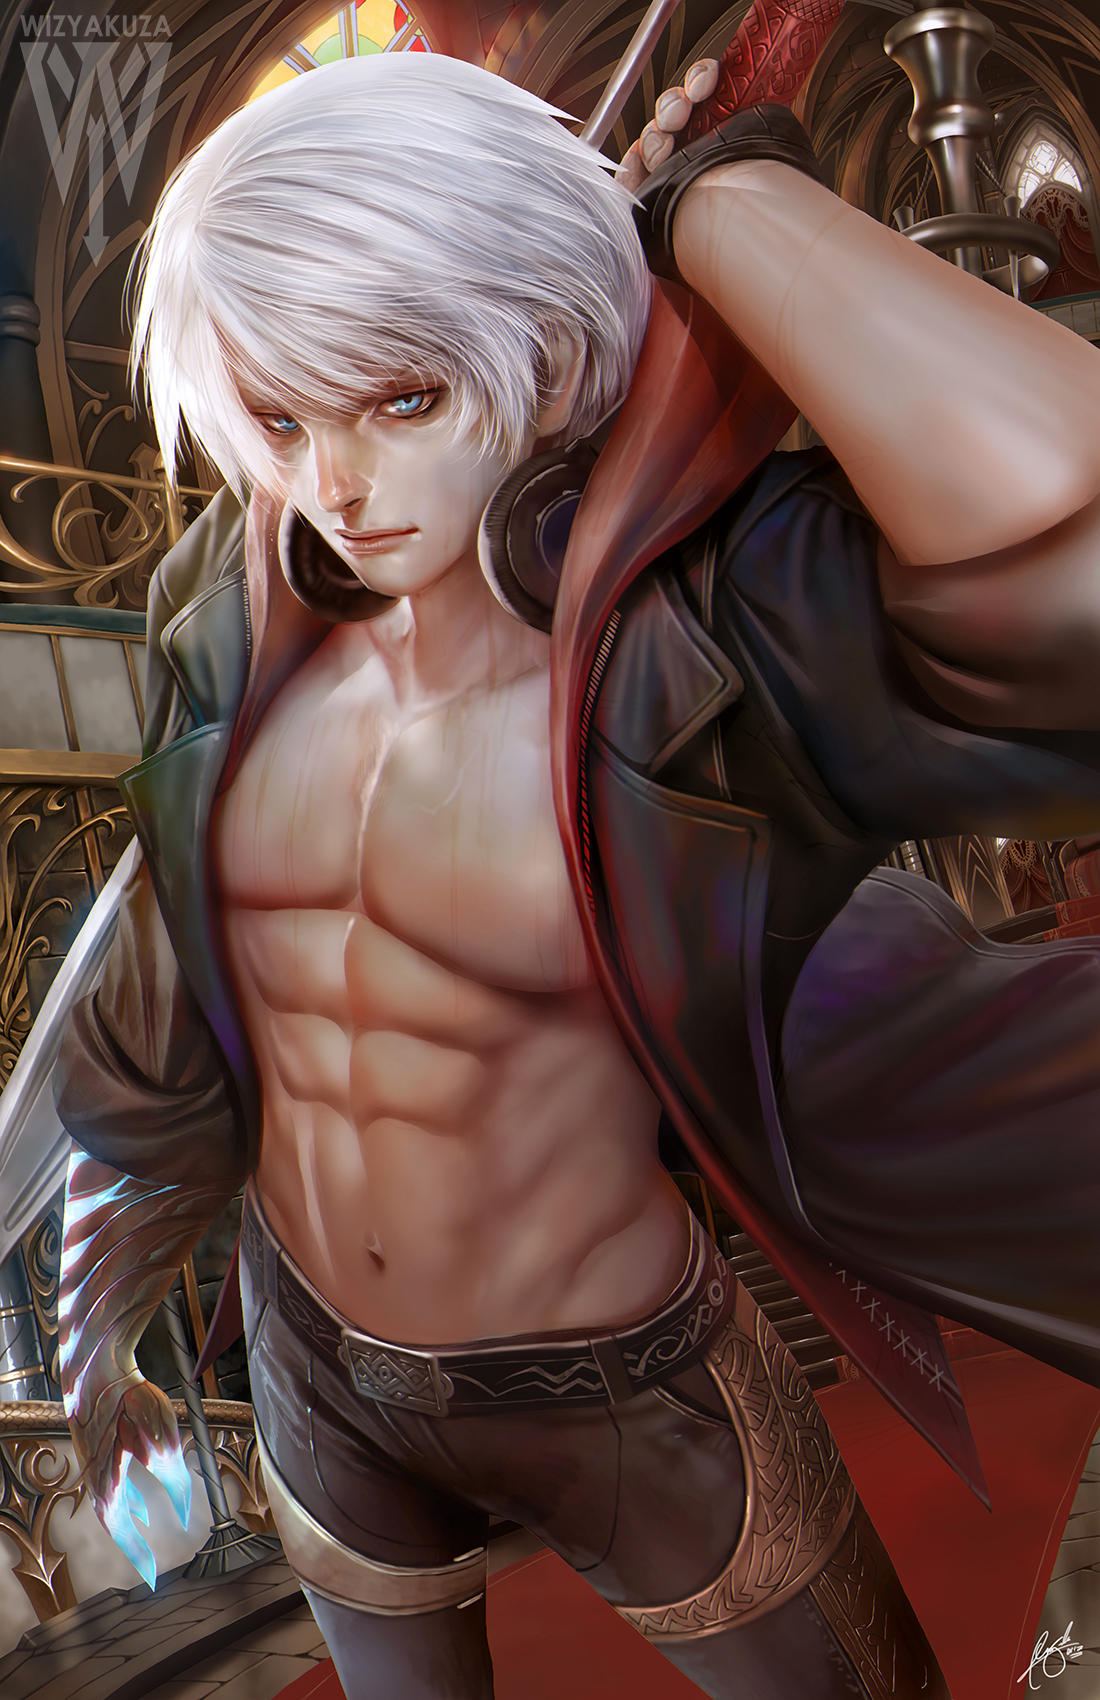 1boy abs adonis_belt artist_logo artist_name bare_chest black_pants blue_eyes ceasar_ian_muyuela chest collared_coat commentary devil_bringer devil_may_cry devil_may_cry_4 english_commentary fingerless_gloves gloves glowing glowing_hand gold_trim headphones headphones_around_neck highres hood hood_down hooded_coat left-handed lips looking_at_viewer male_focus navel nero_(devil_may_cry) nose pants realistic red_queen_(sword) shirtless signature sleeves_folded_up solo toned toned_male trench_coat white_hair